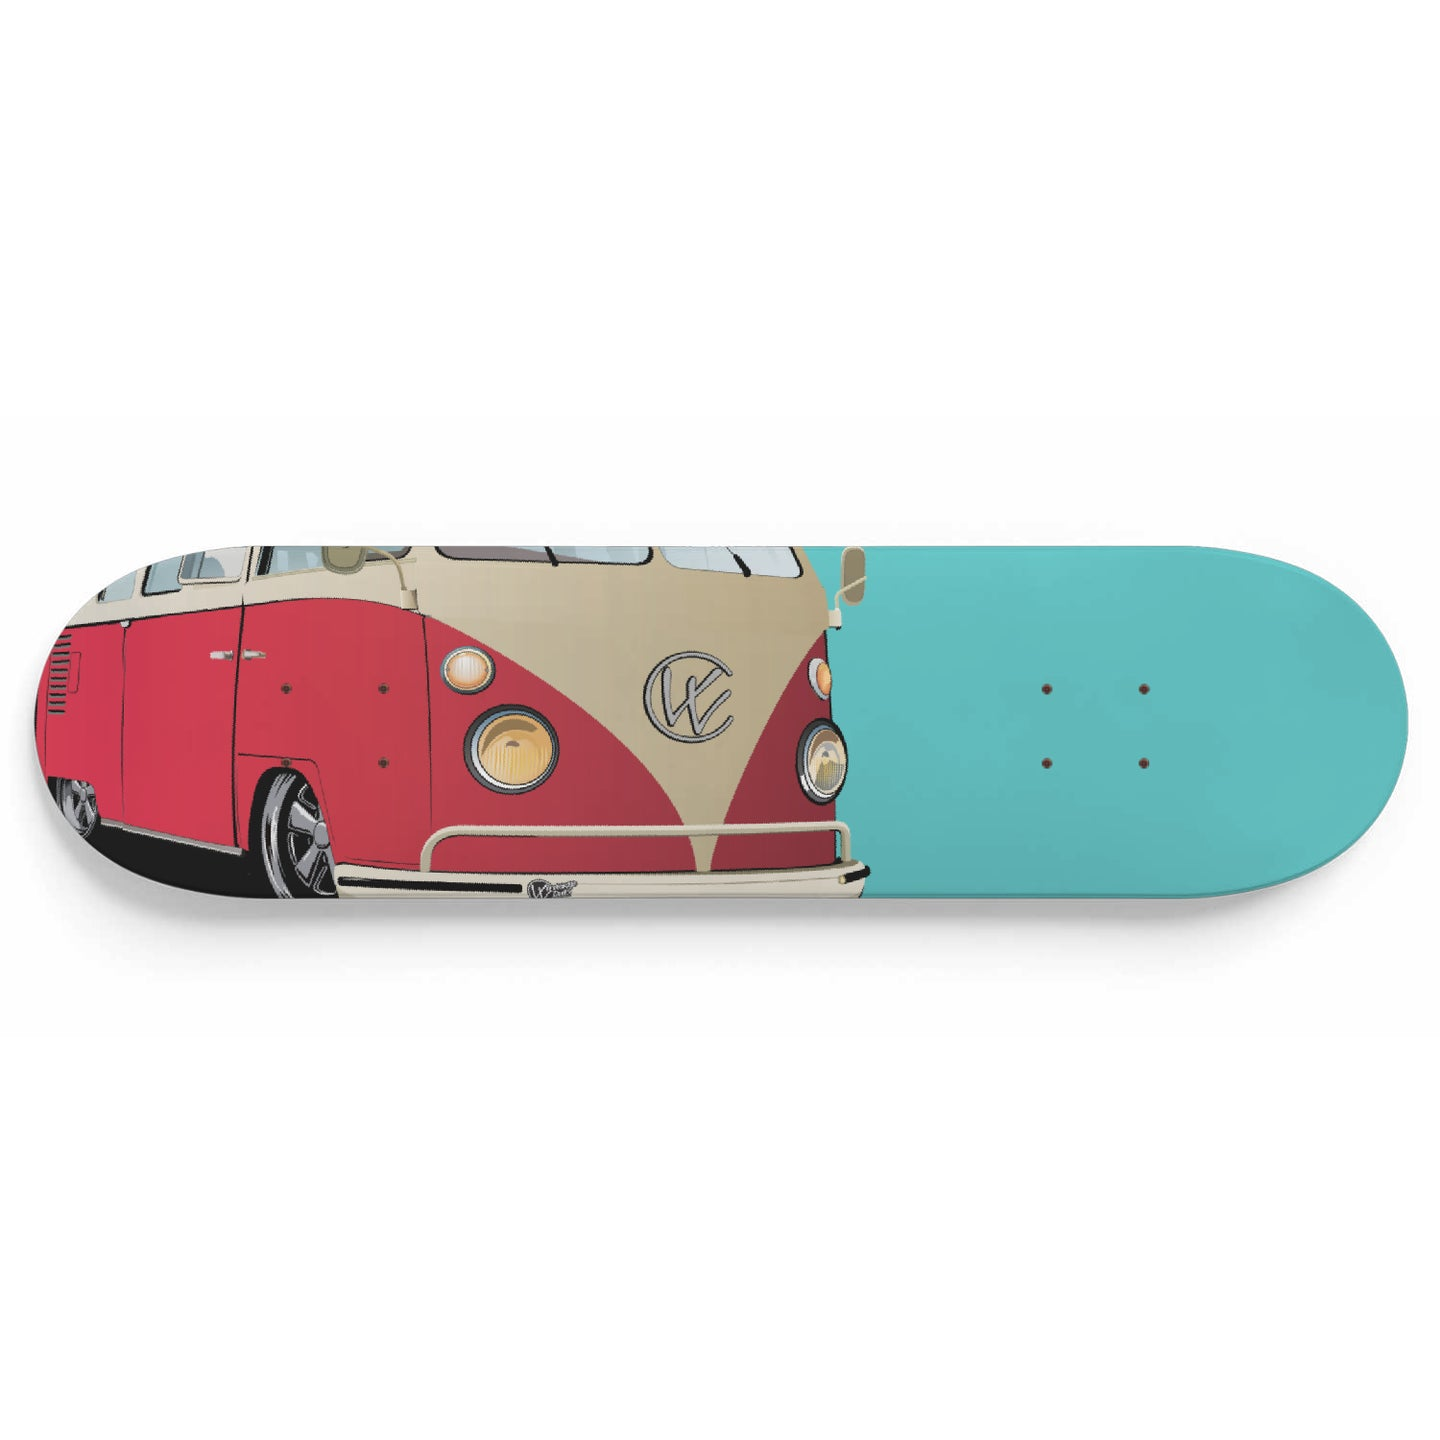 Vintage Splitty Red/Sea Foam, - Aircooled VW - Vintage Vdub